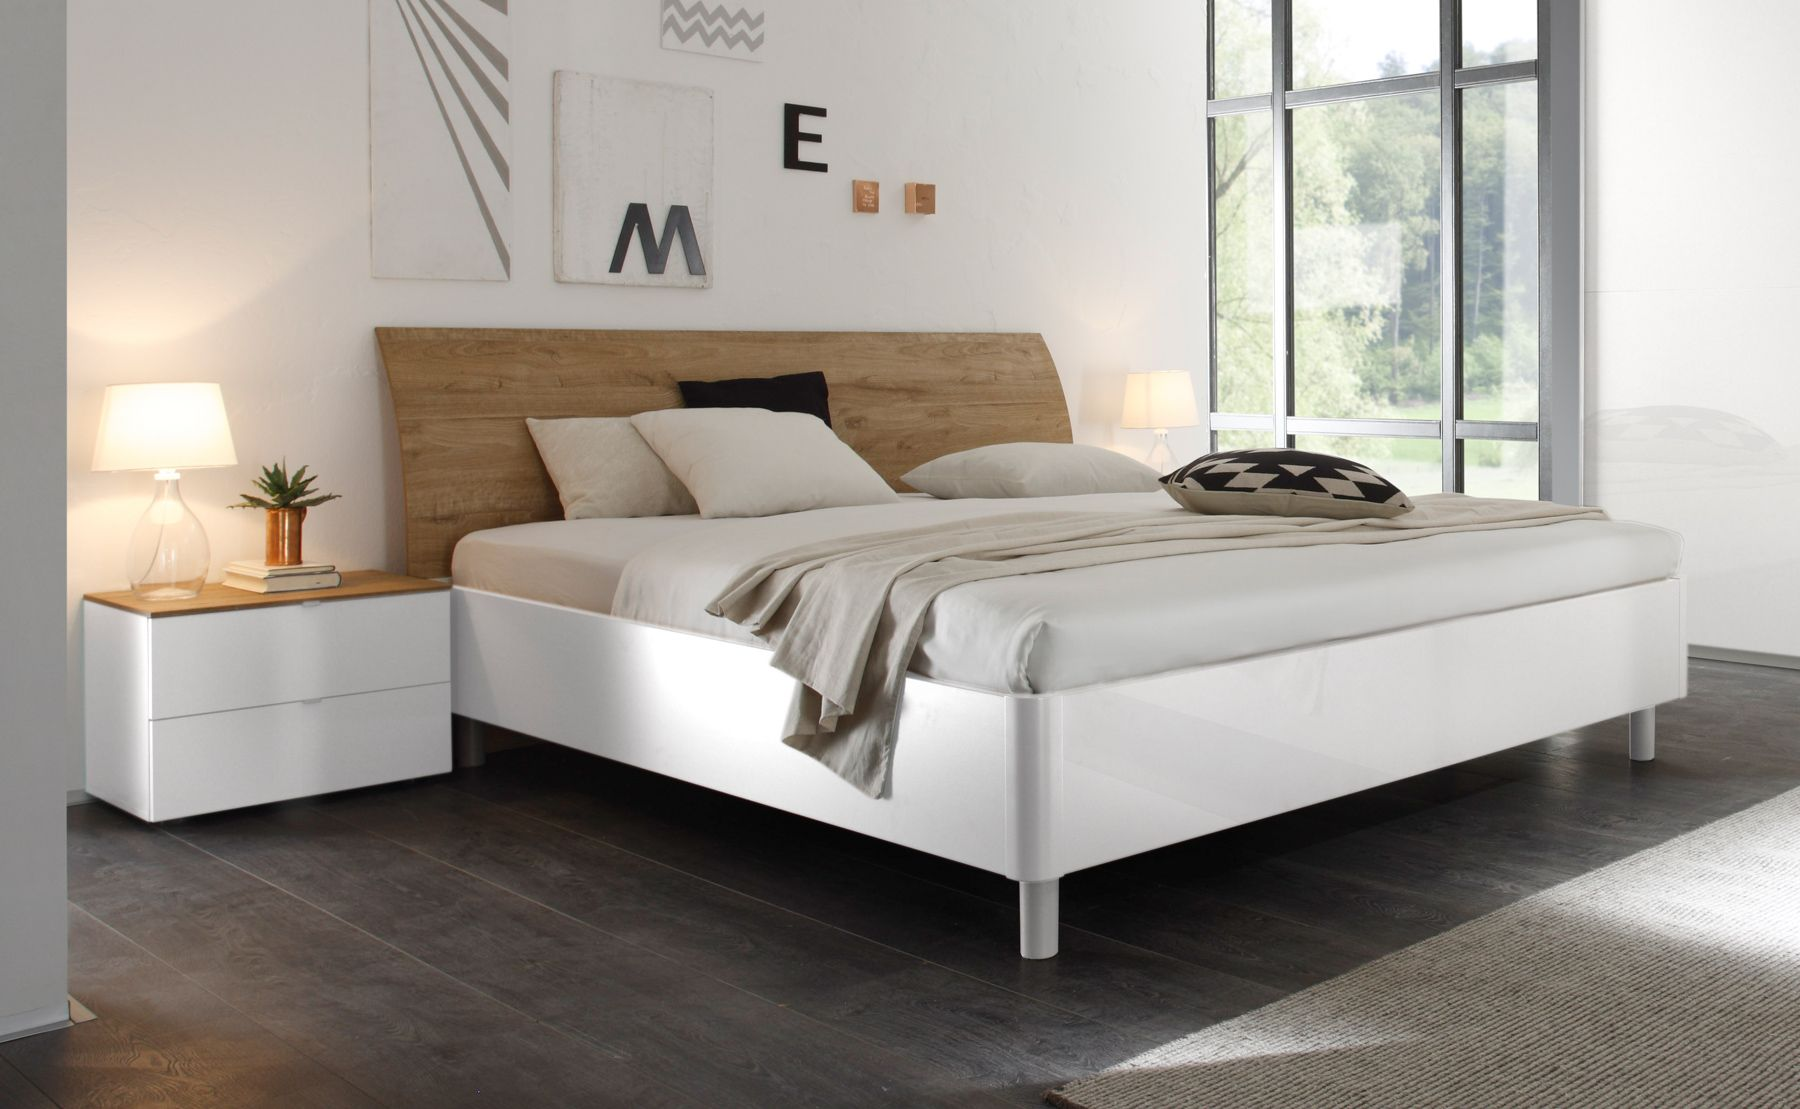 doppelbett bett 180 x 200 cm weiss hochglanz lack eiche natur tambio28 schlafzimmer pinterest. Black Bedroom Furniture Sets. Home Design Ideas